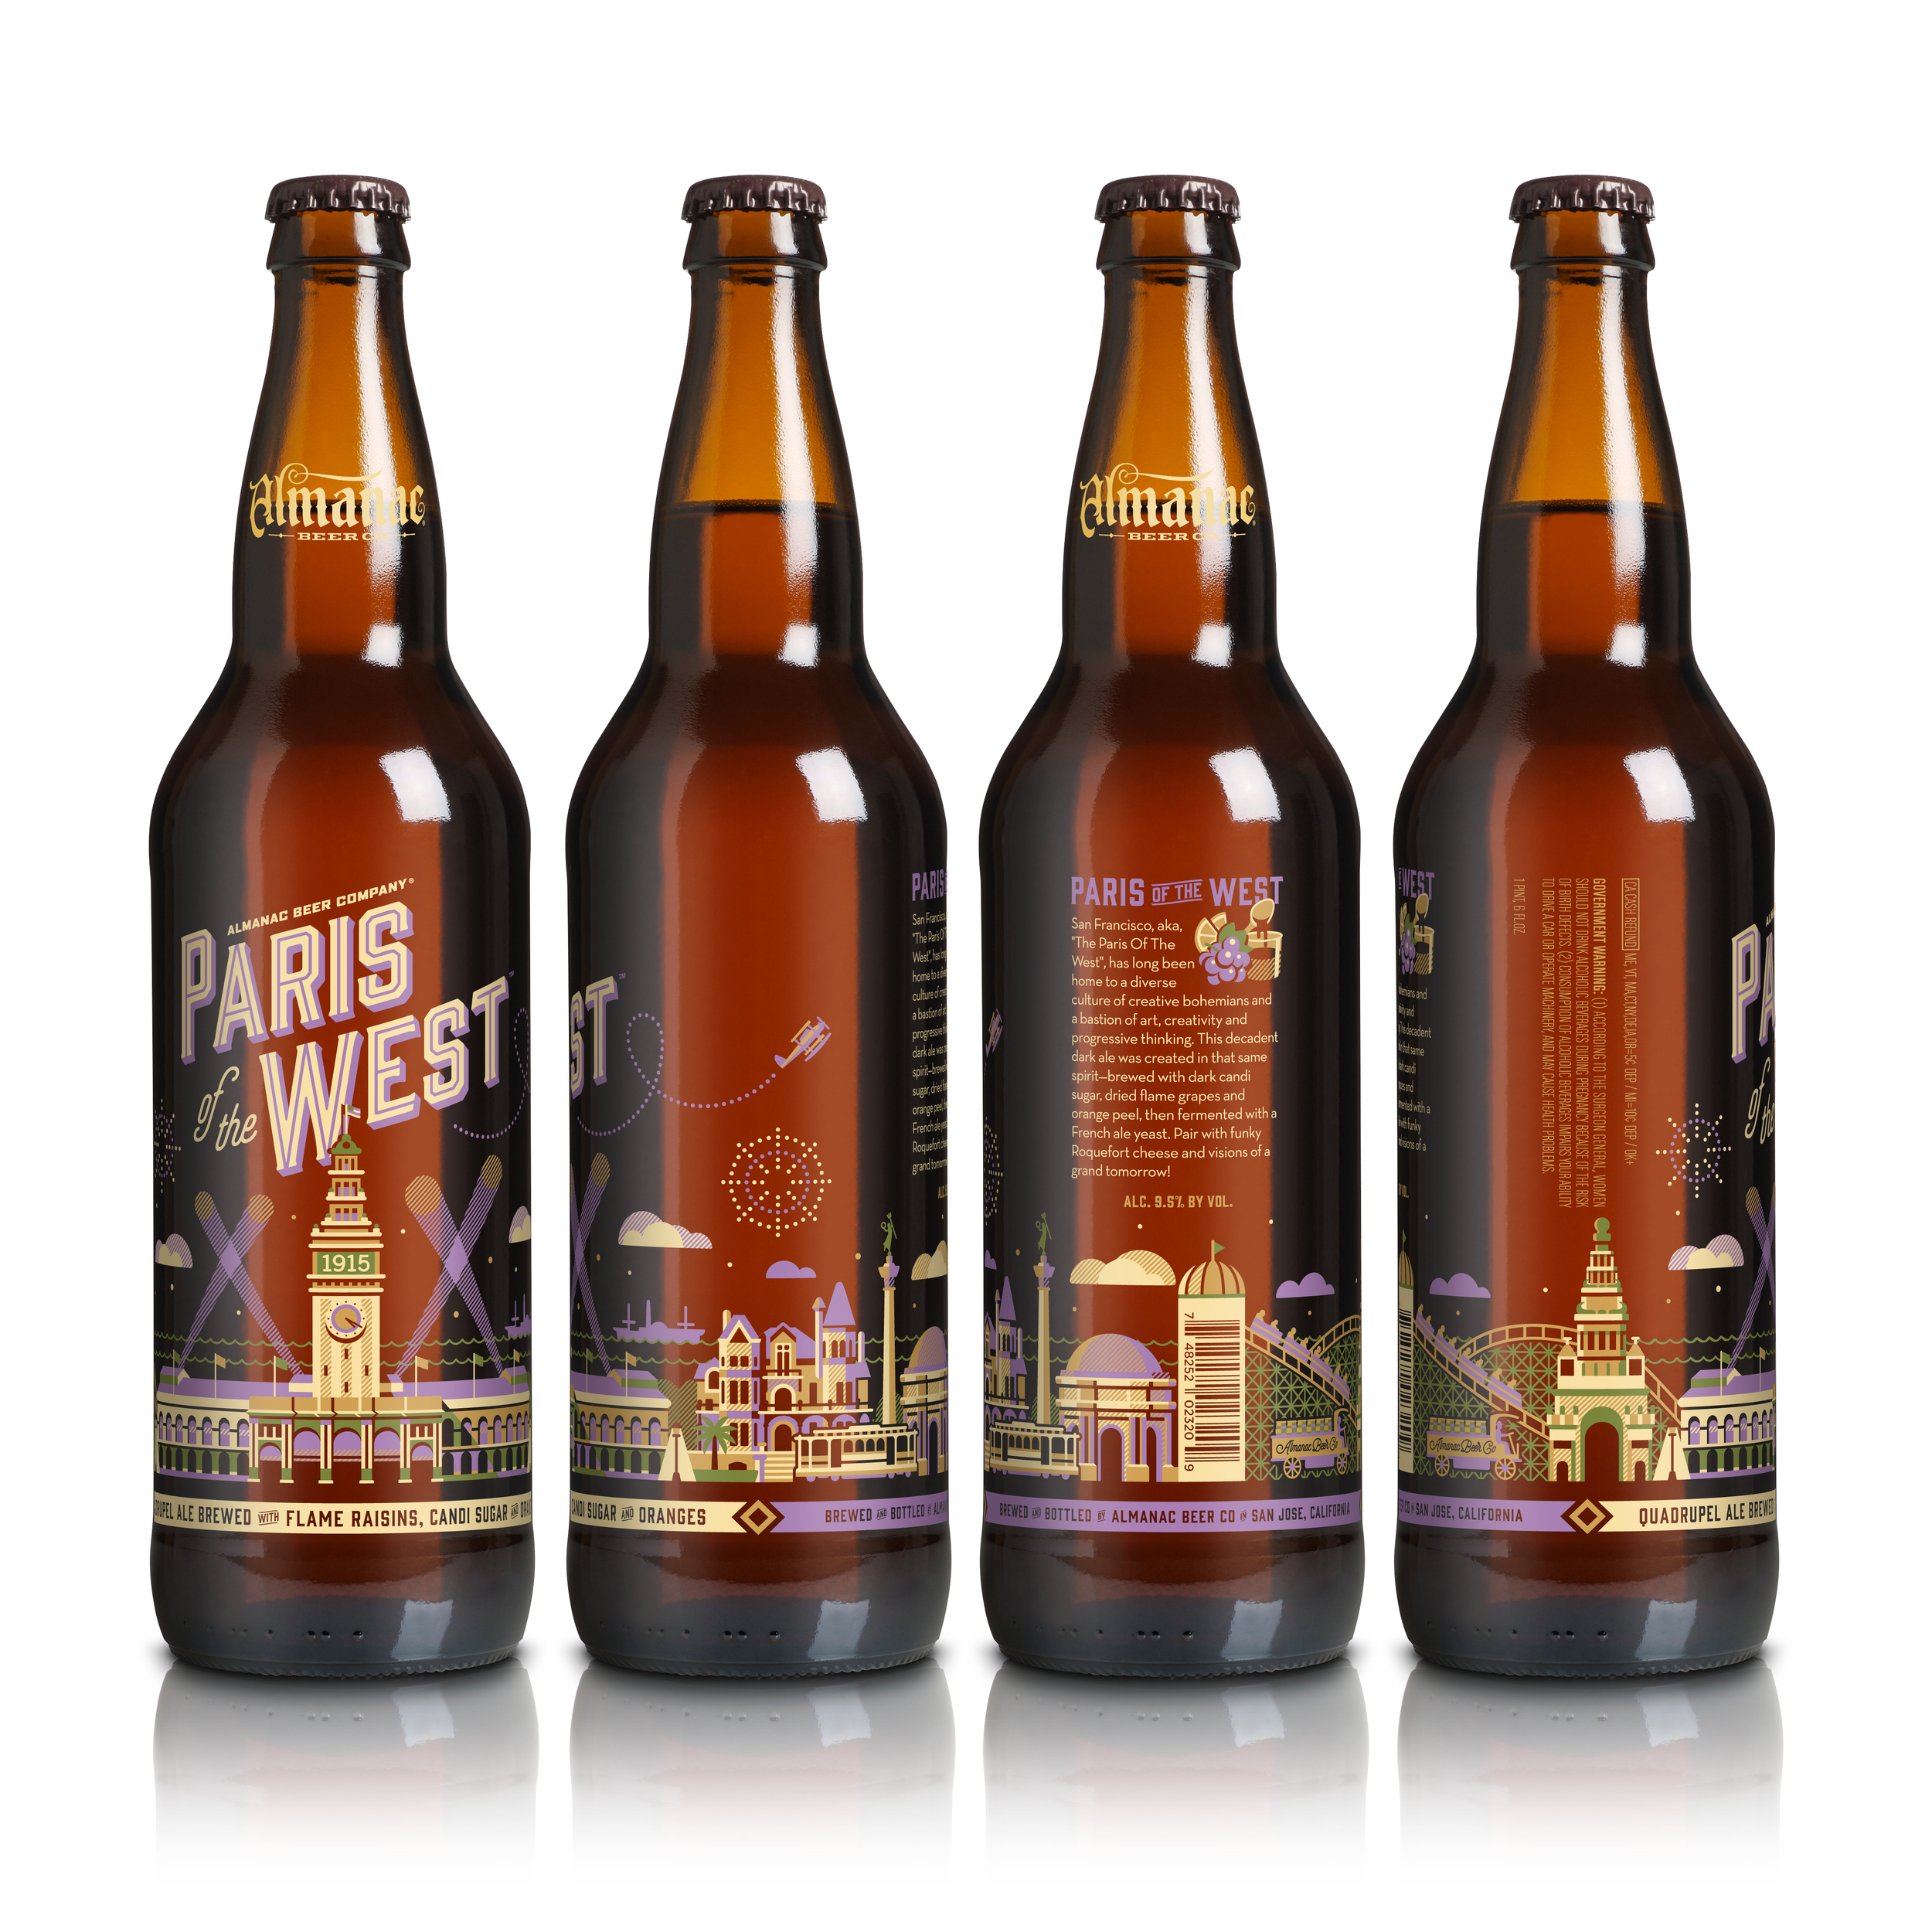 Almanac's Paris of the West bottle design by DKNG